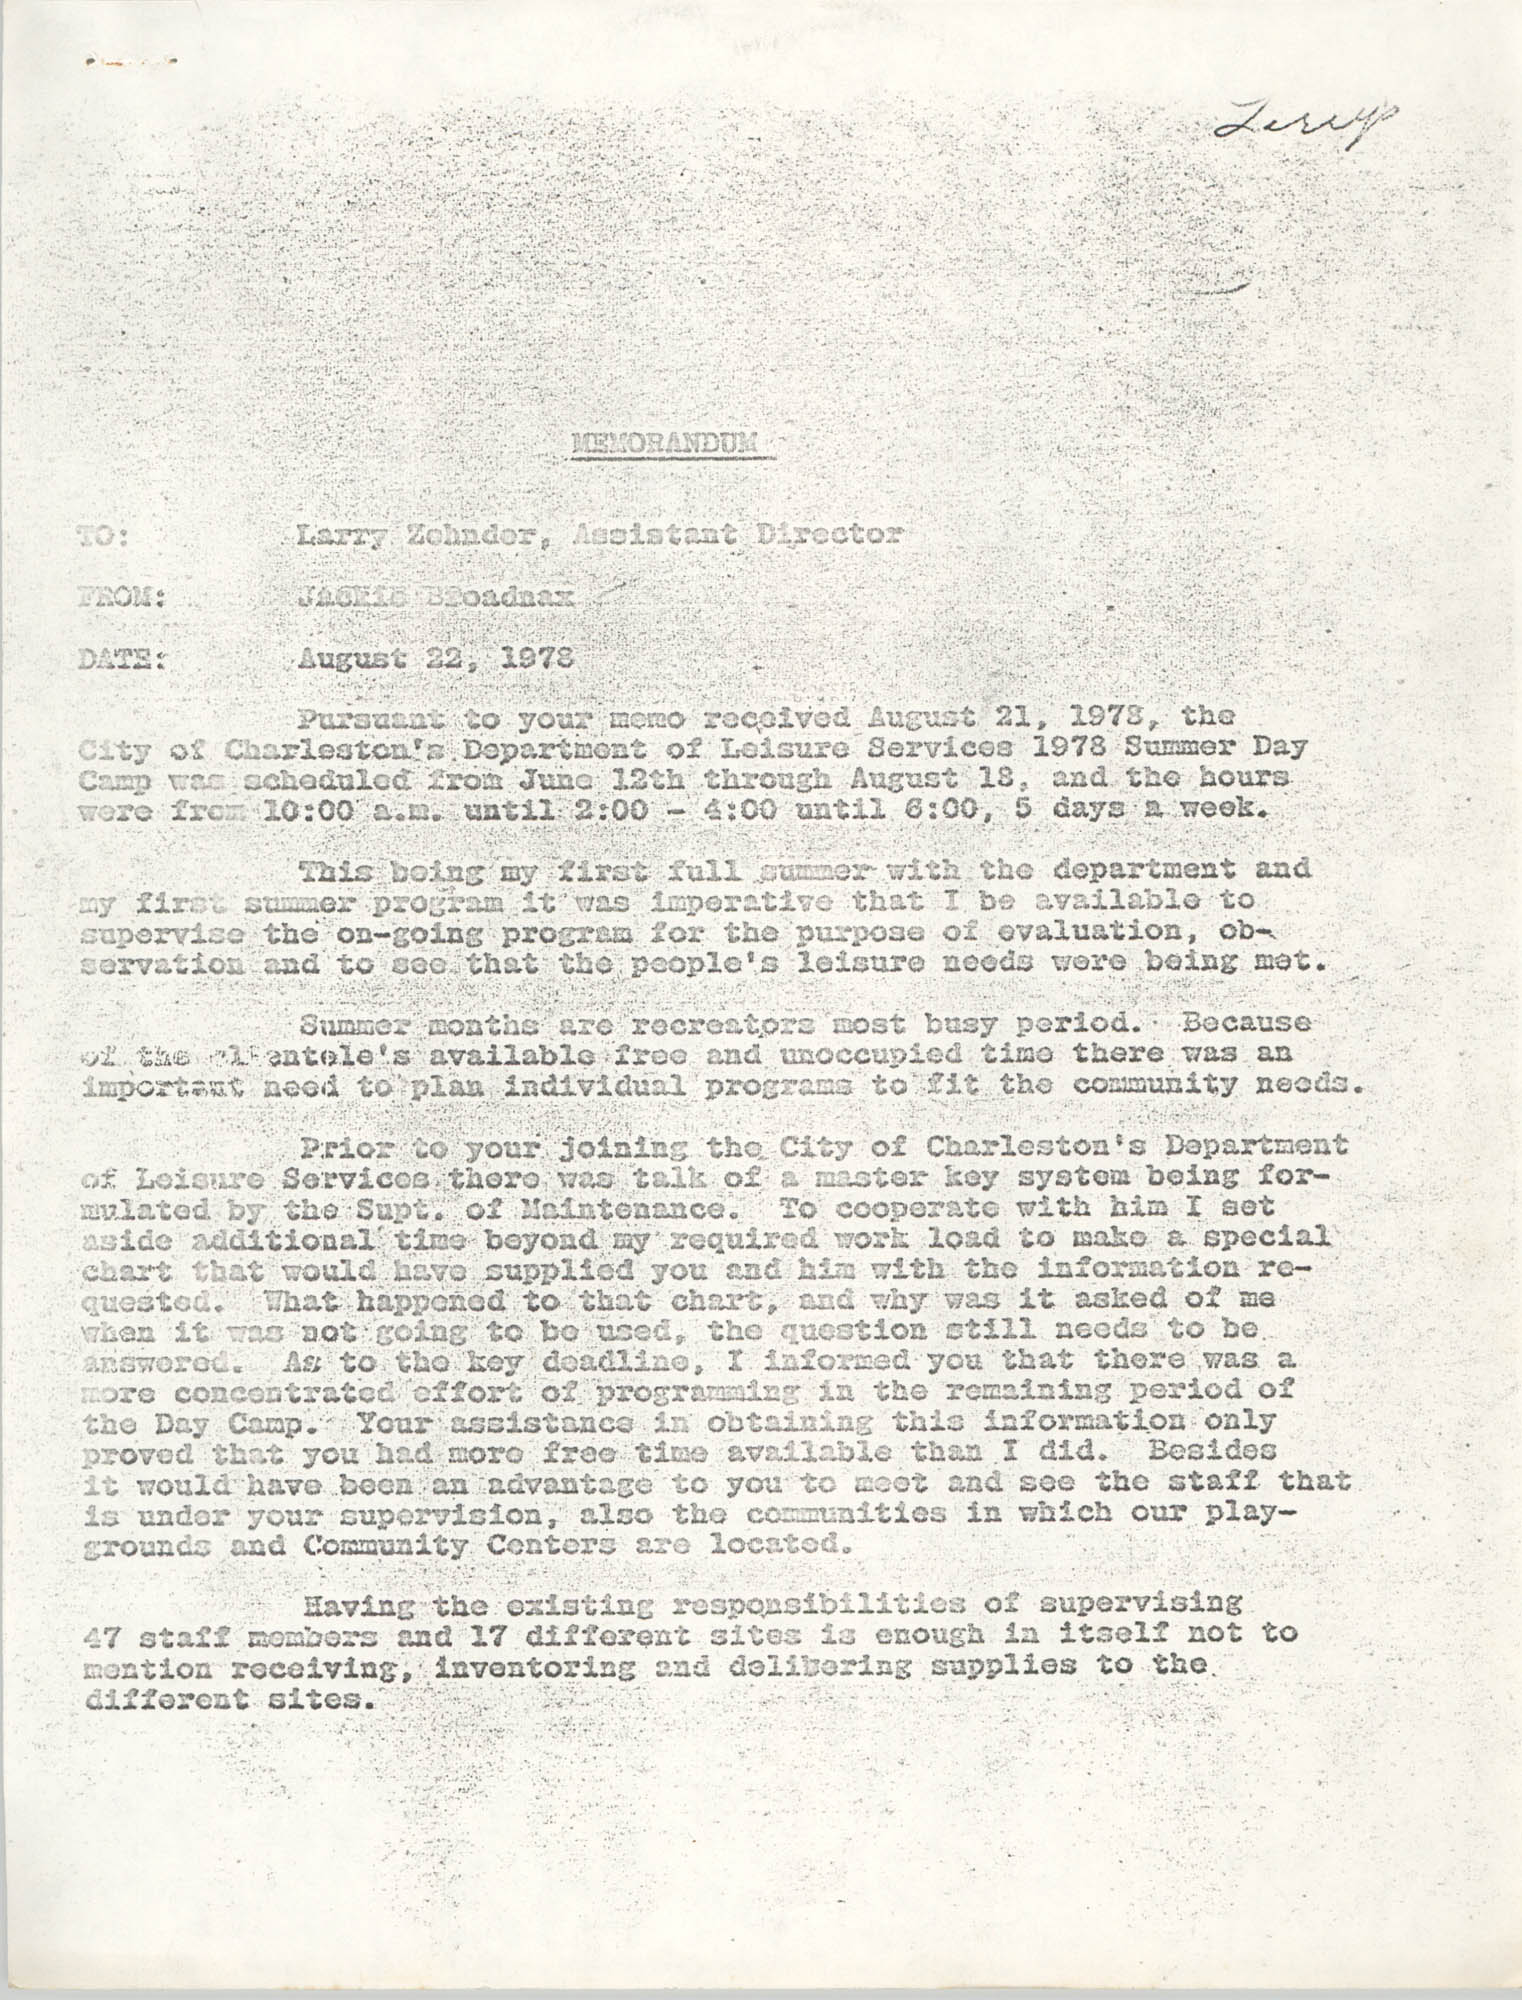 City of Charleston Department of Leisure Services Memorandum, August 21, 1978